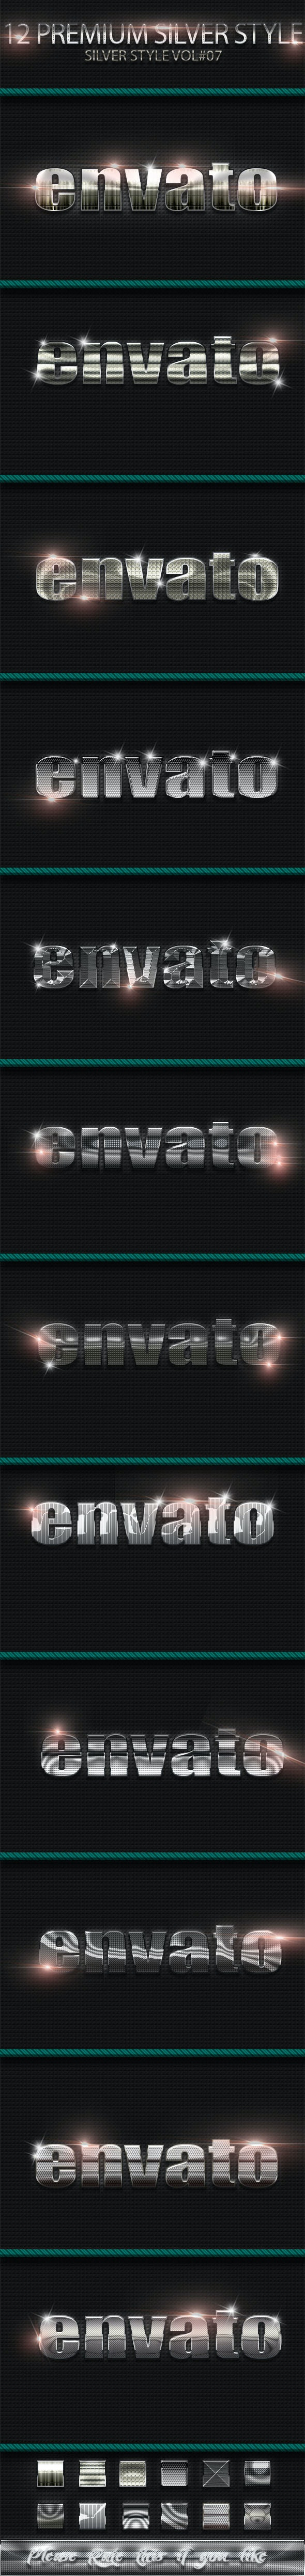 12 Photoshop Text Effect Styles Vol 8 - Text Effects Styles